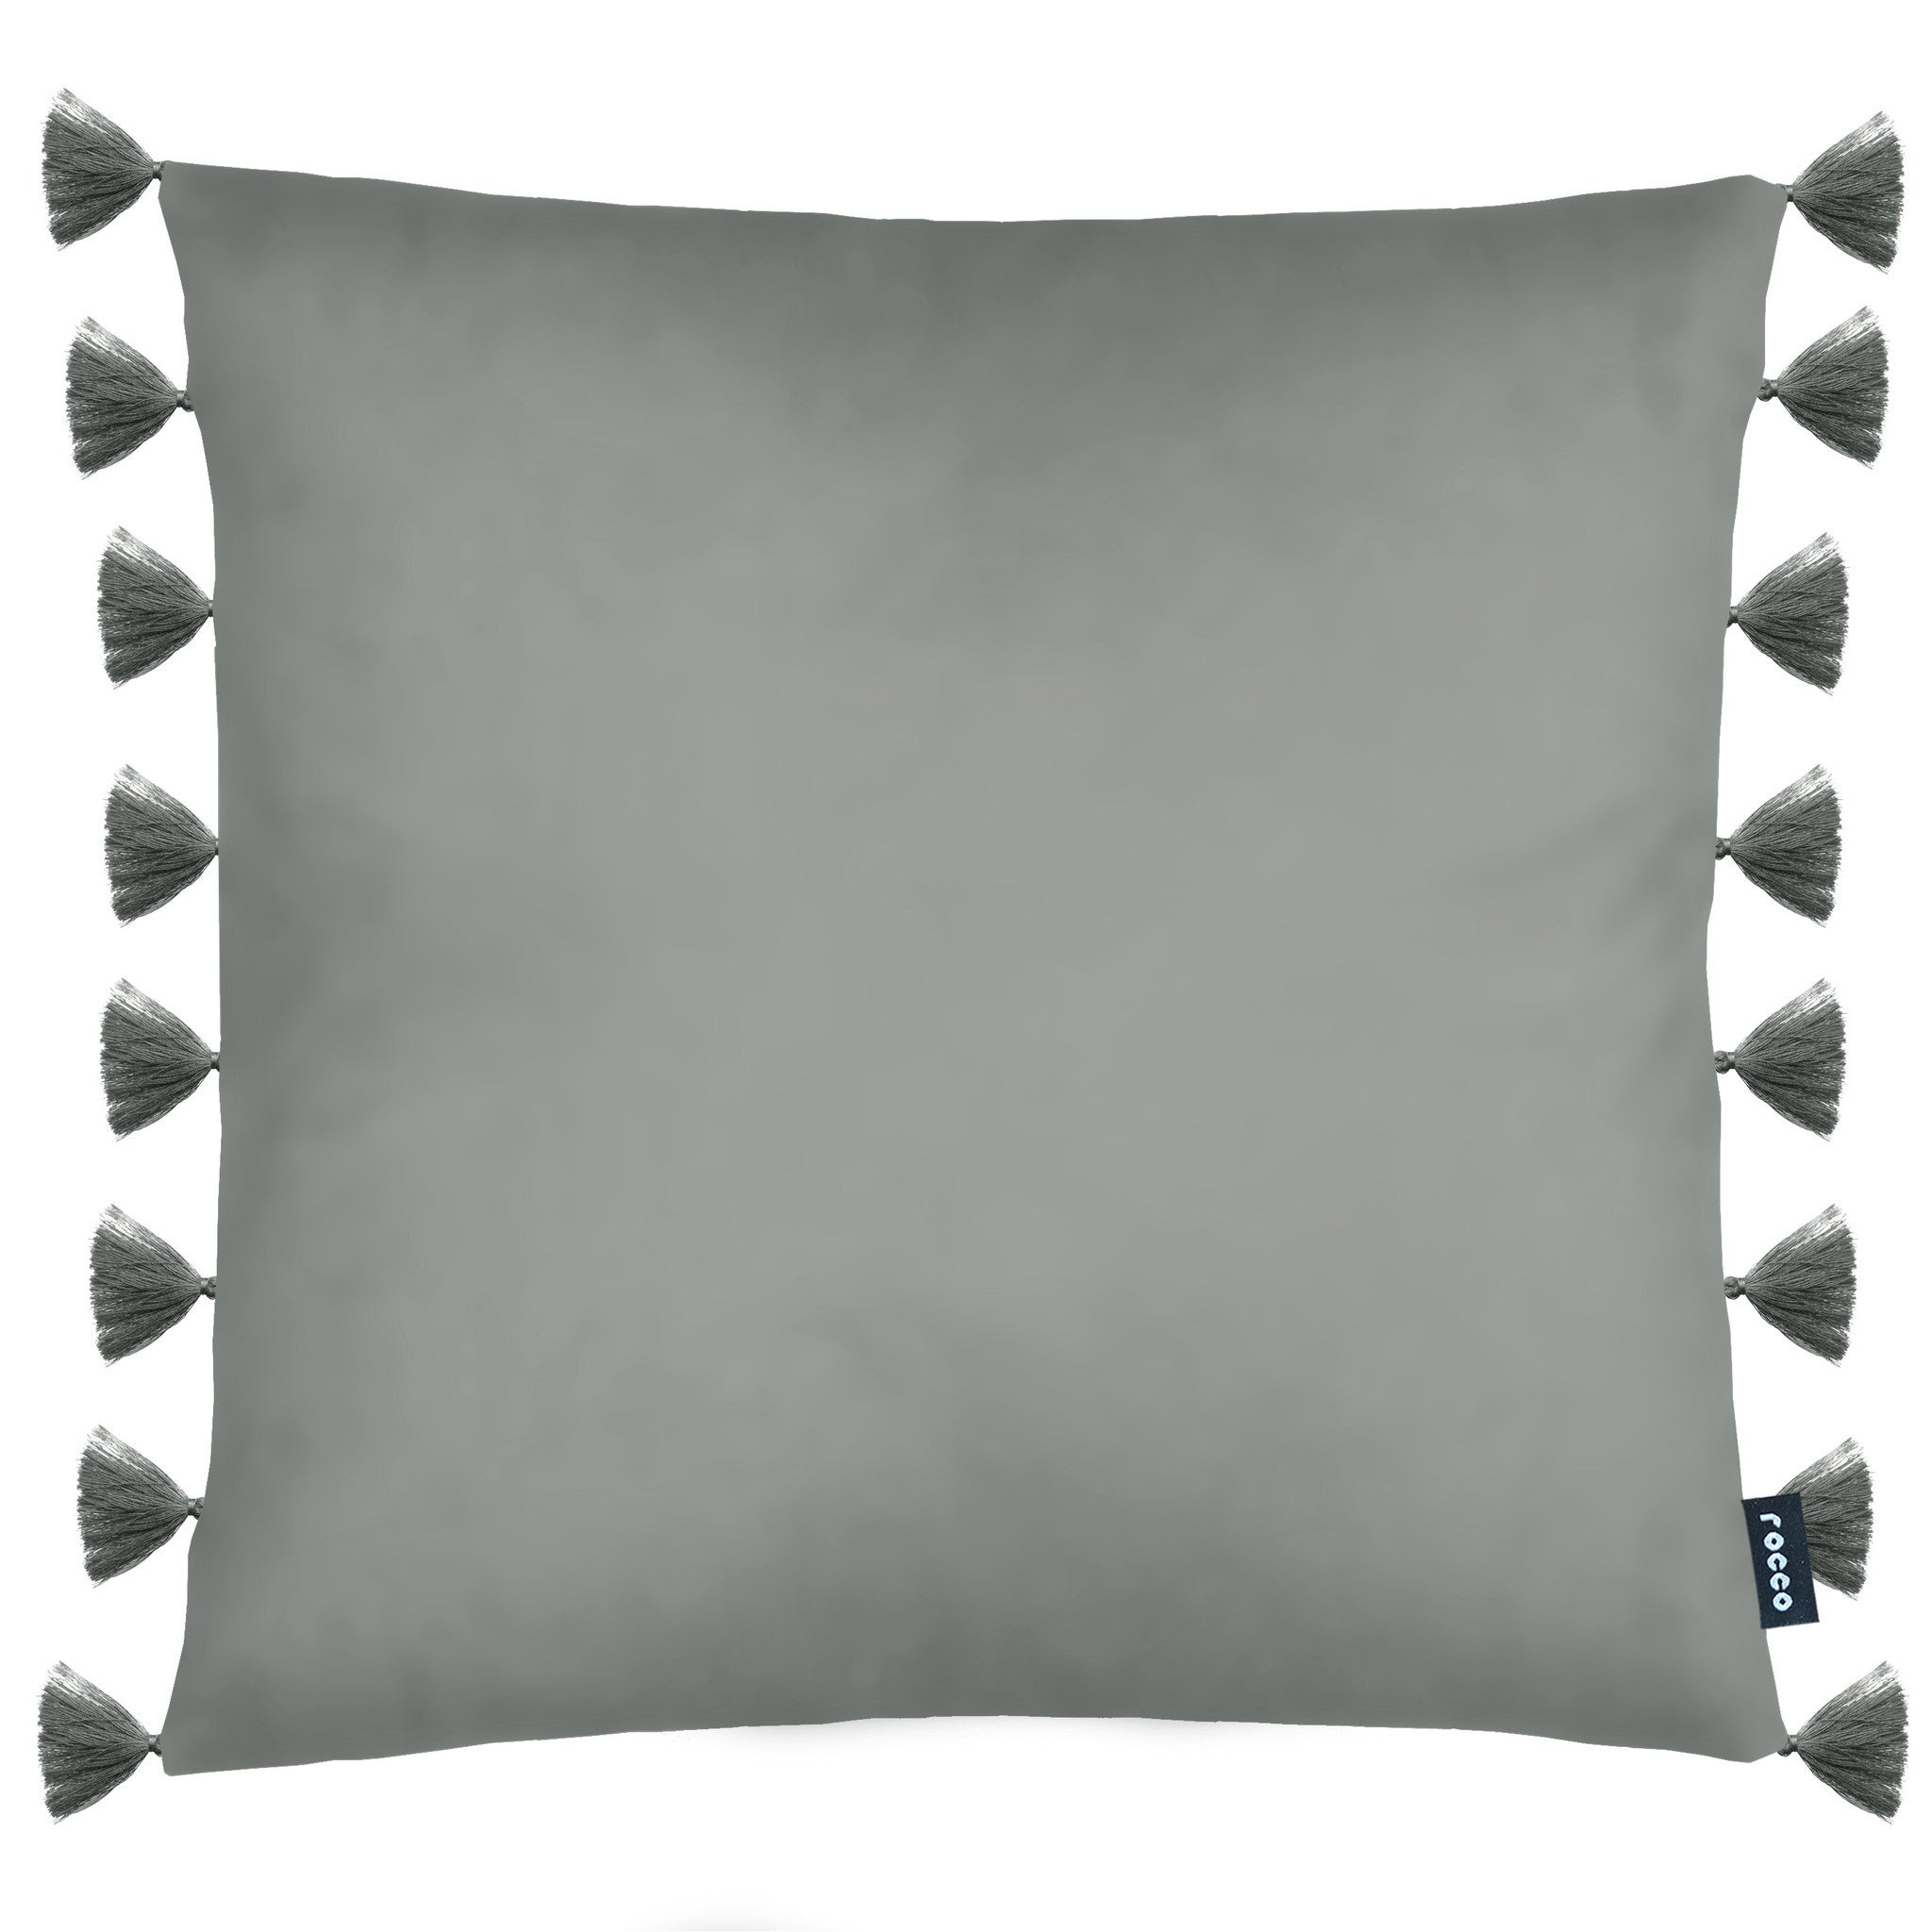 Rocco Royal Velvet Tassel Trim Grey 43 x 43cm Filled Cushion - Set Of 4